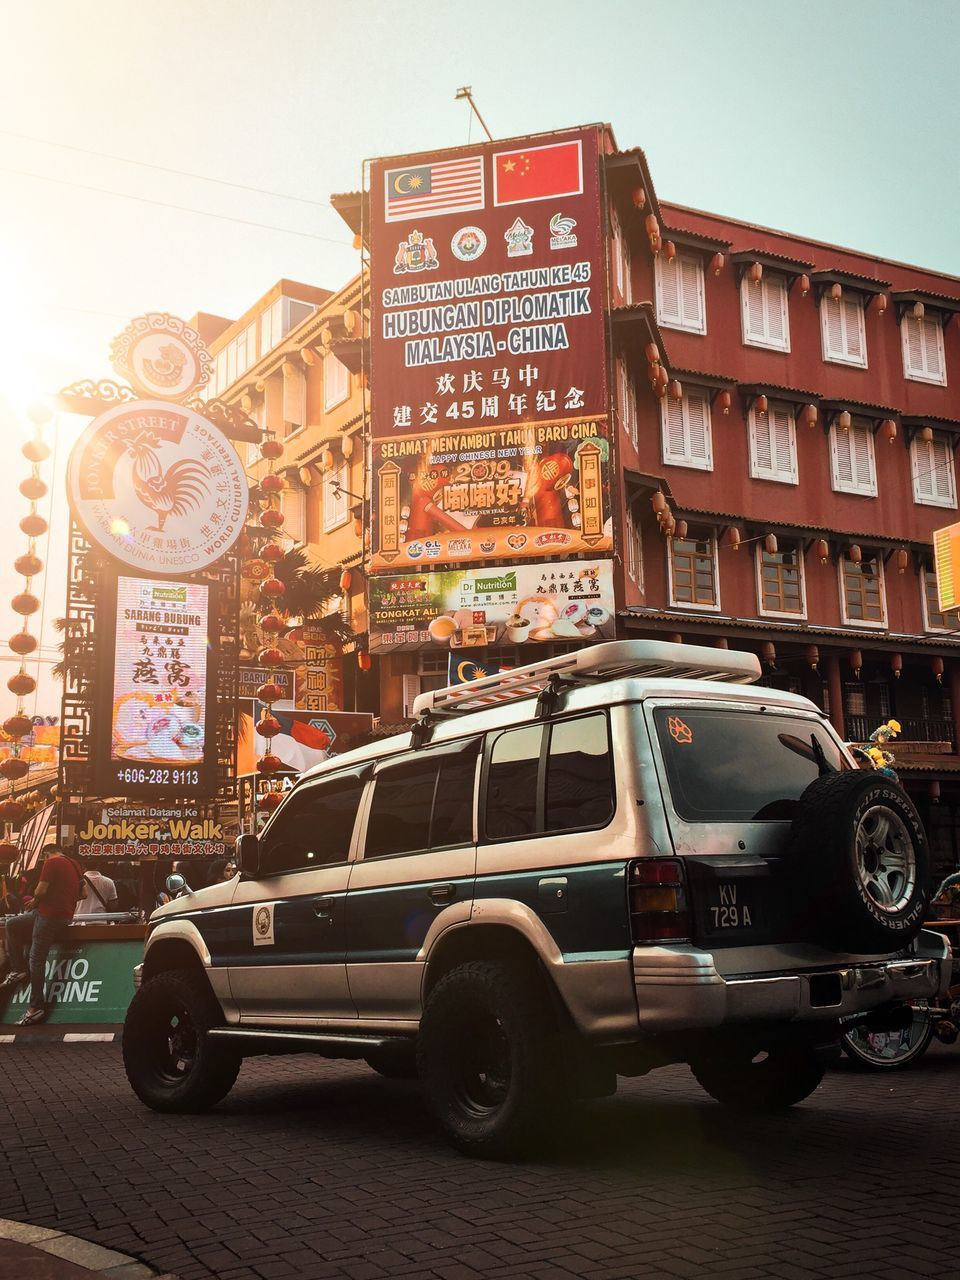 building exterior, architecture, mode of transportation, transportation, city, built structure, car, motor vehicle, land vehicle, street, text, city street, communication, western script, sky, road, city life, building, sign, script